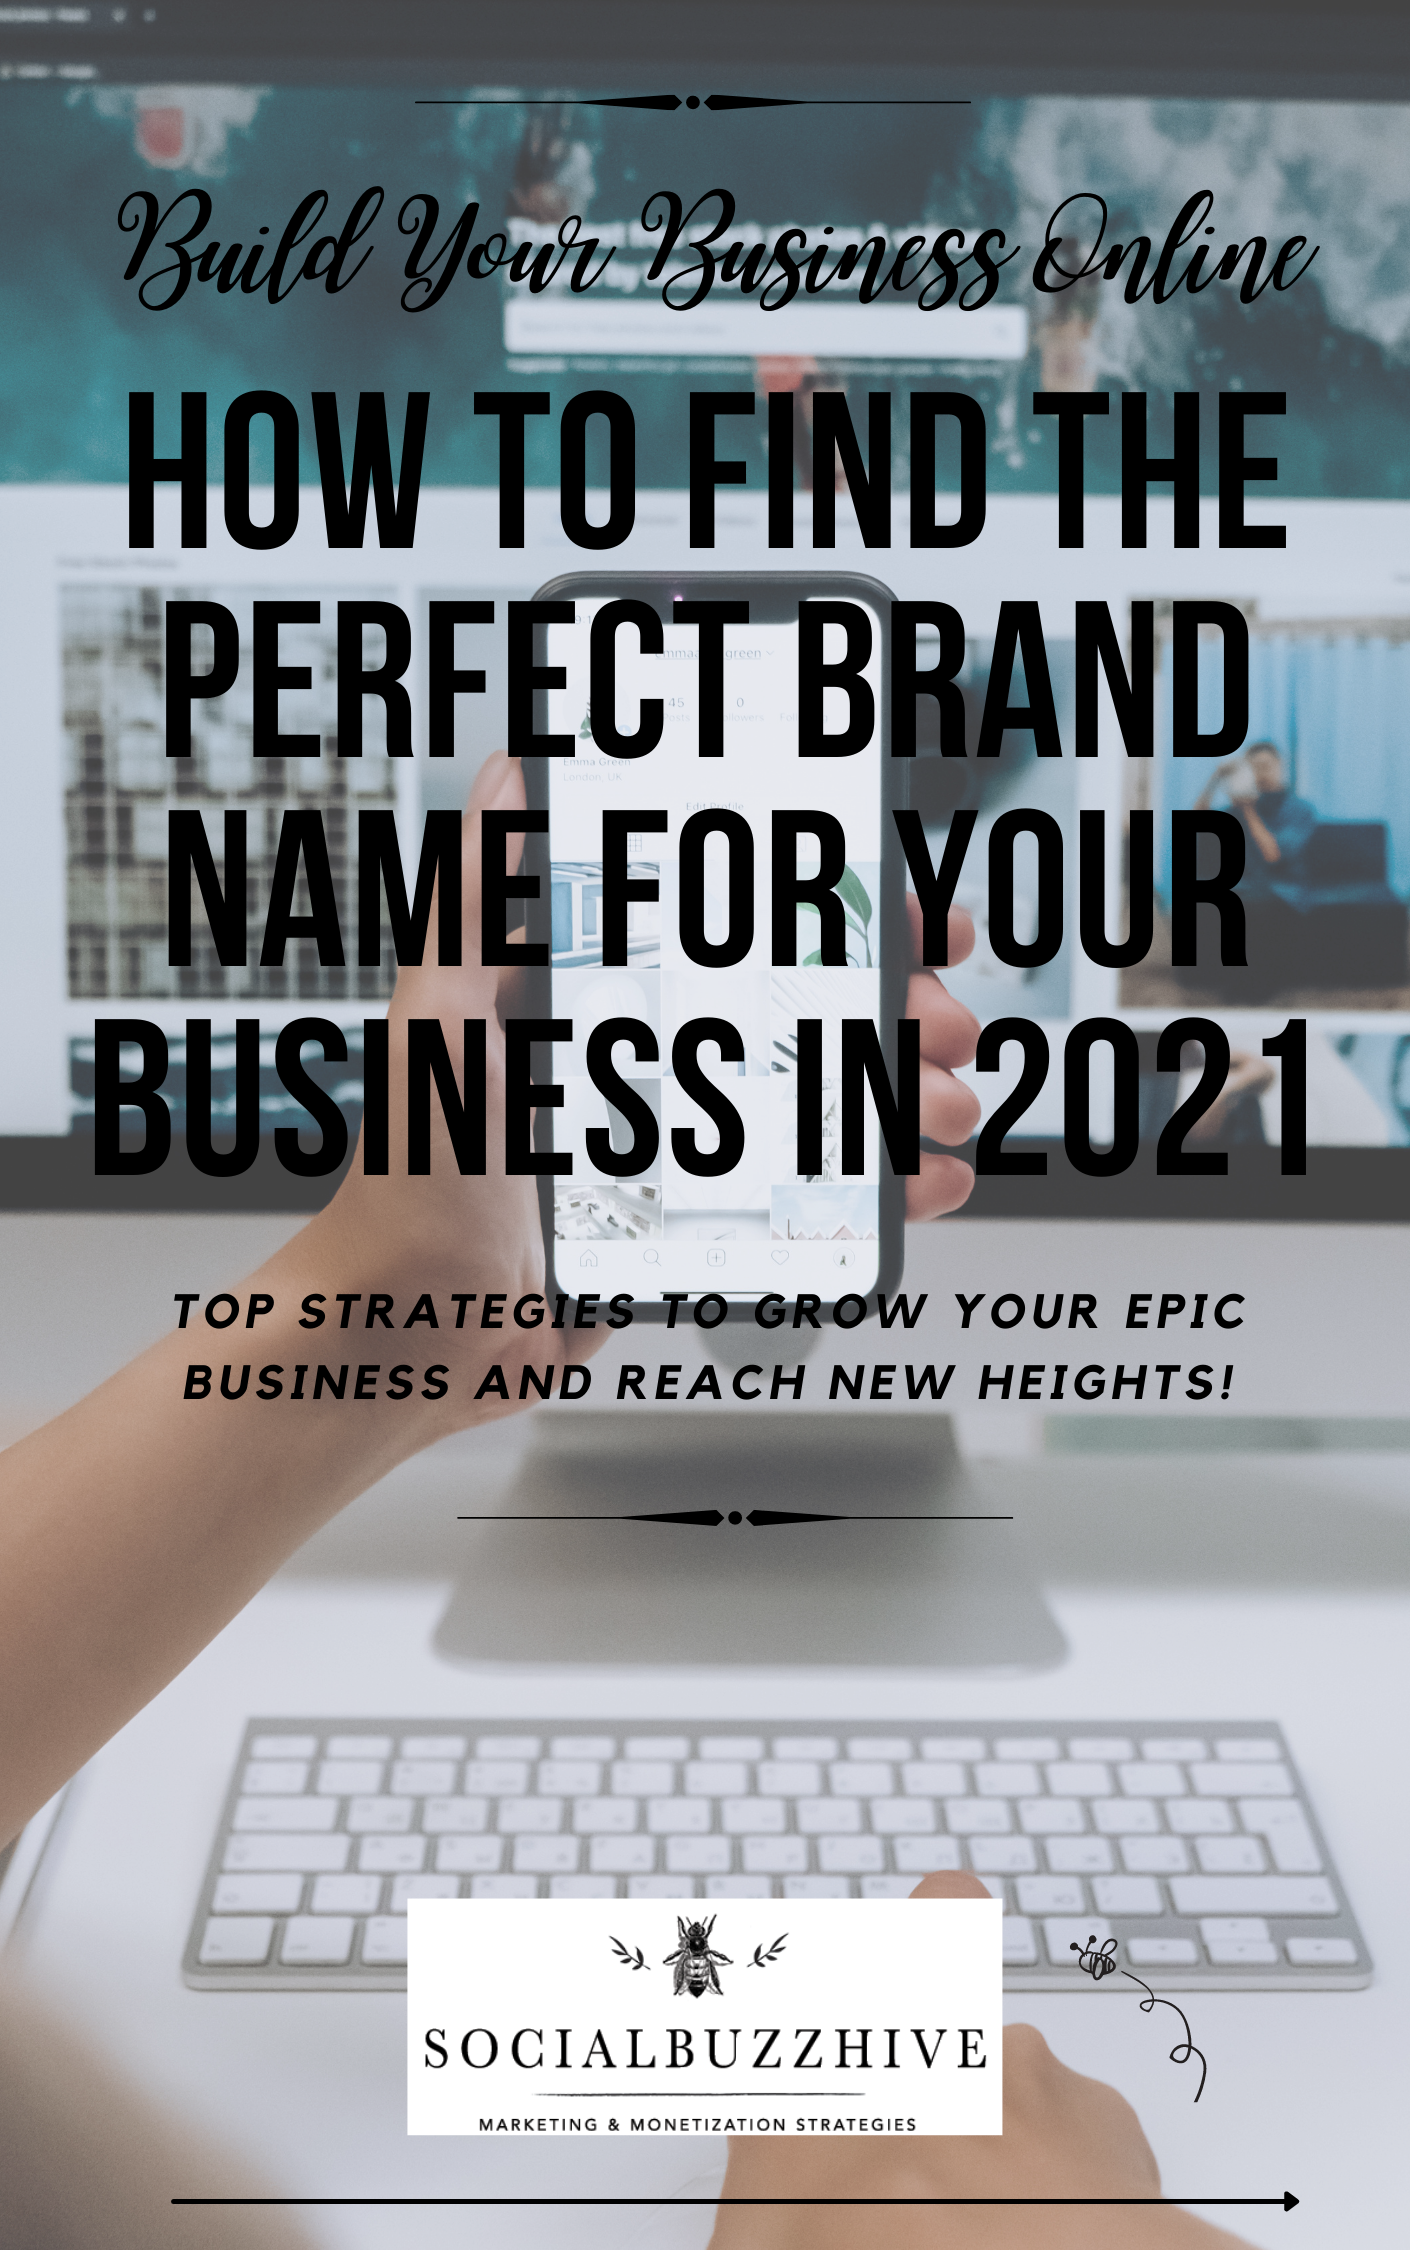 FIND THE PERFECT BRAND NAME FOR YOUR BUSINESS